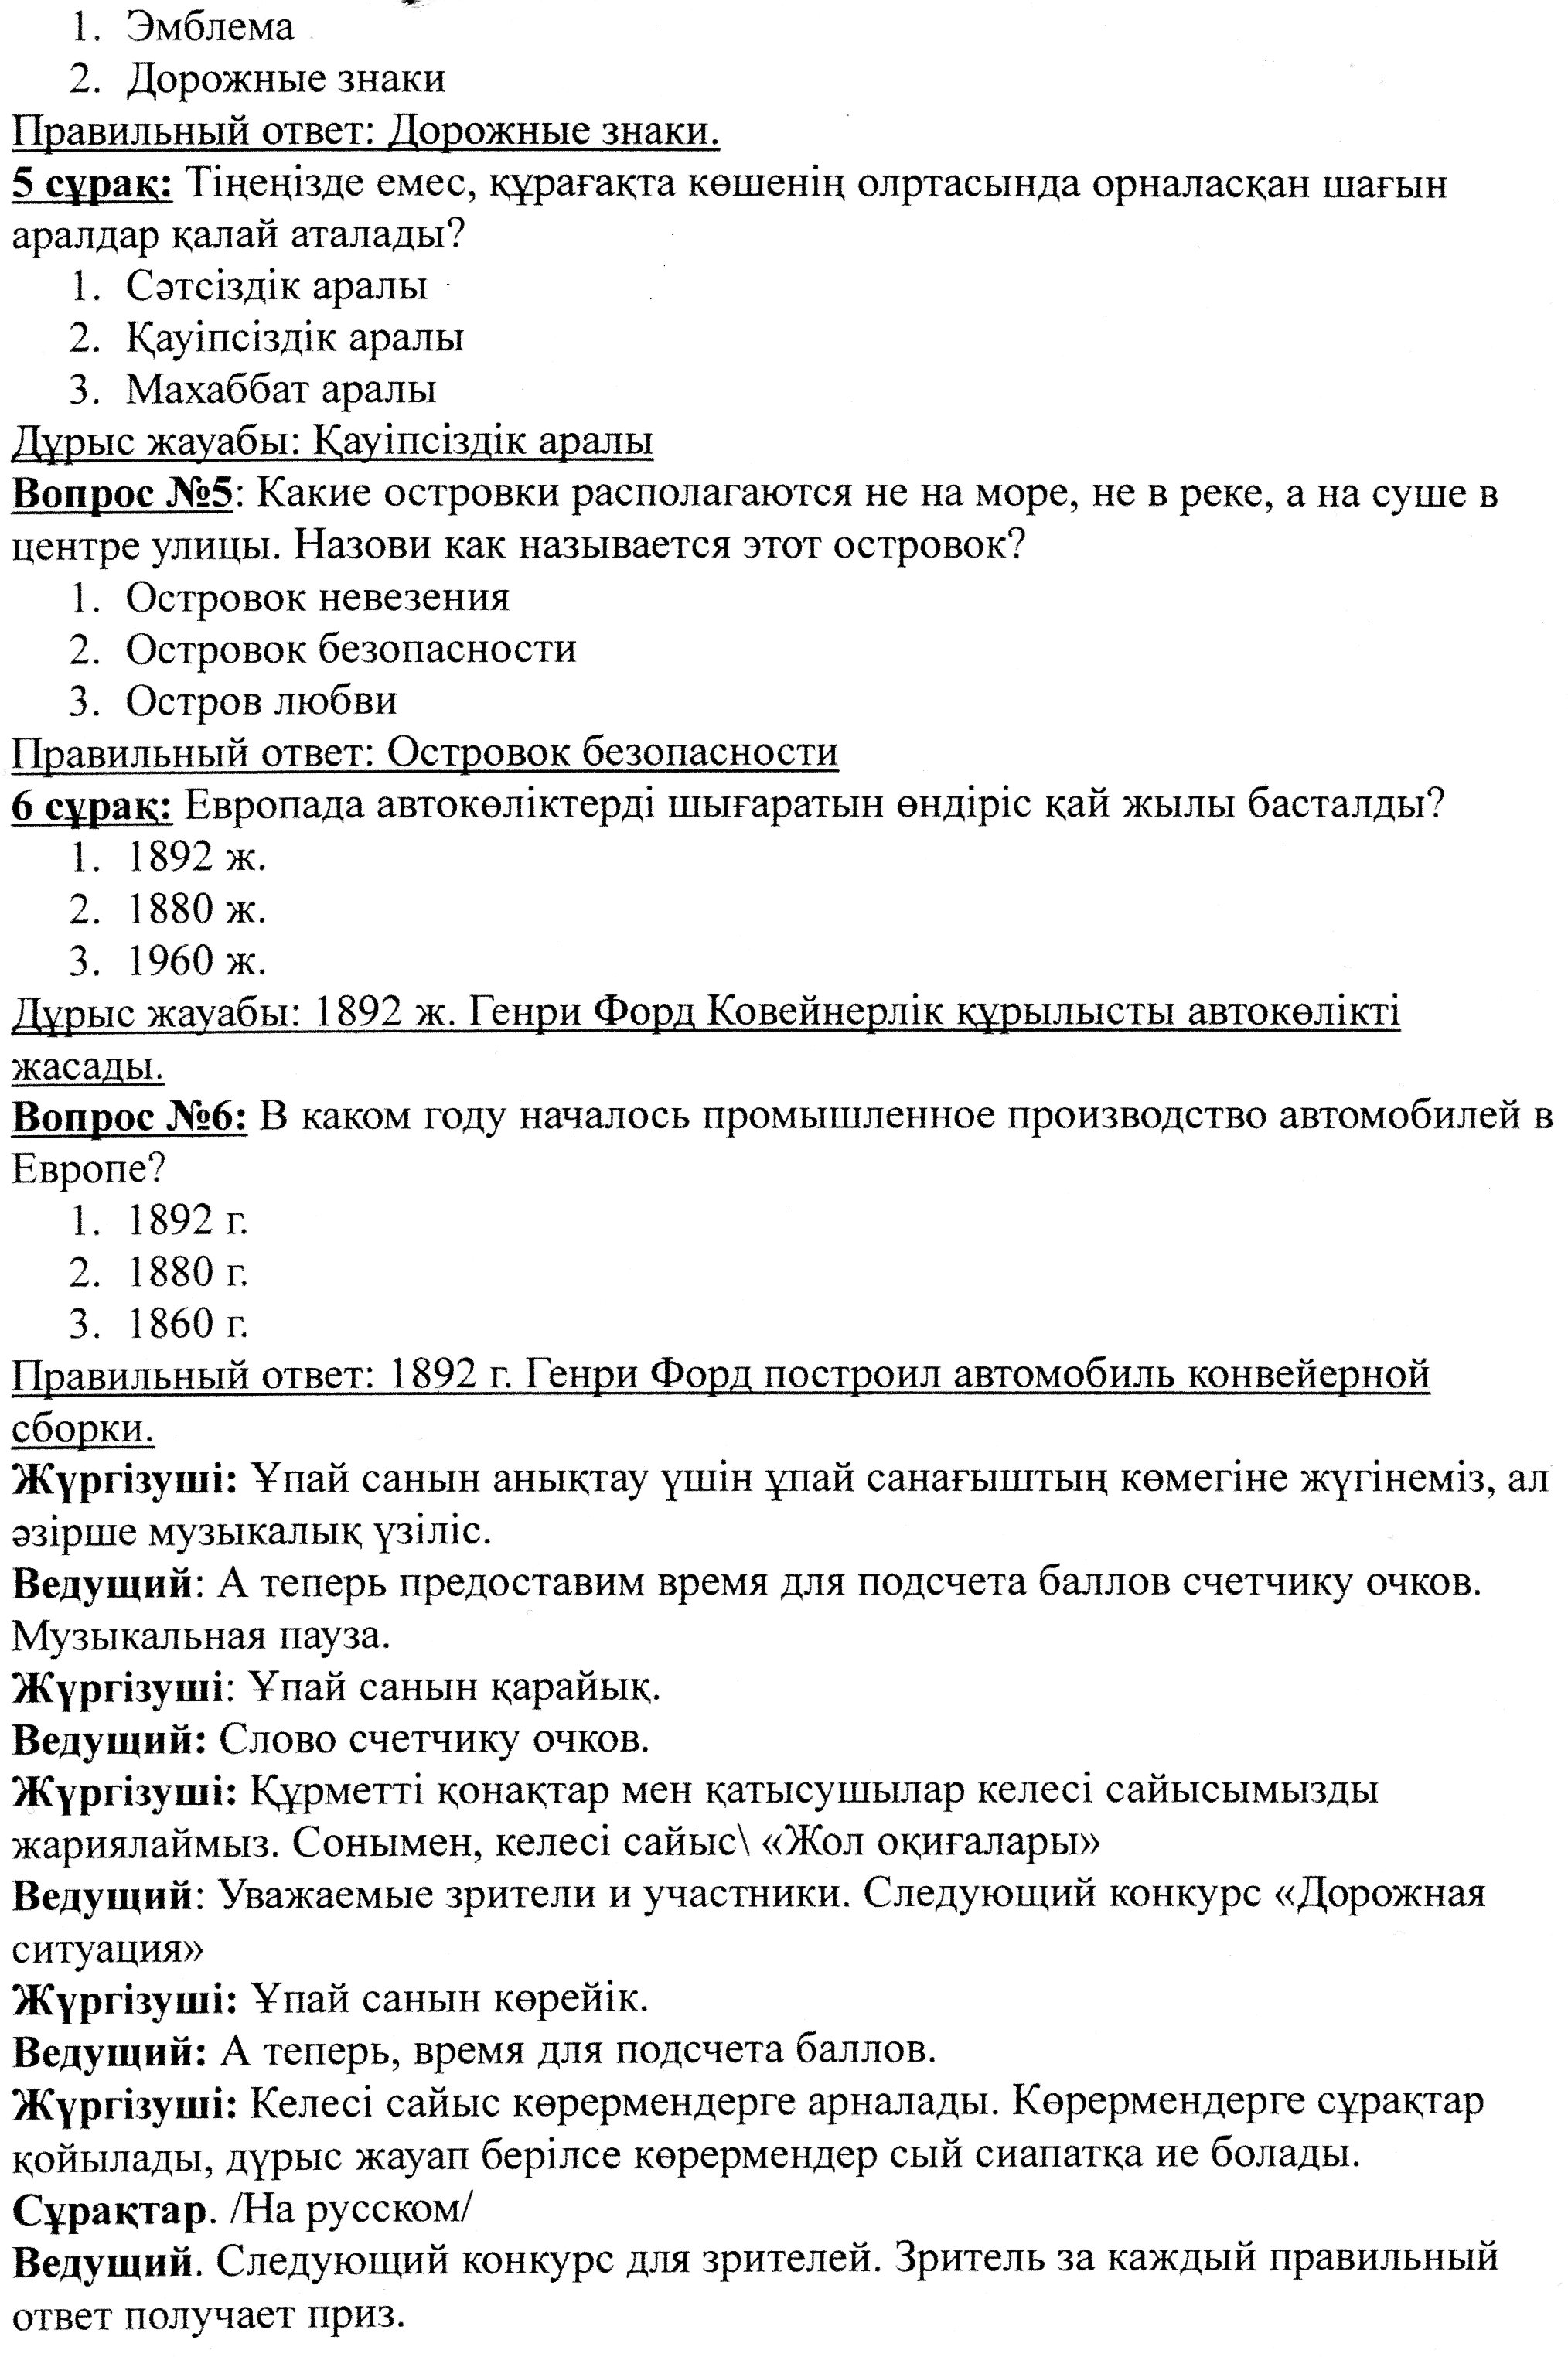 C:\Users\Василий Мельченко\Pictures\img552.jpg